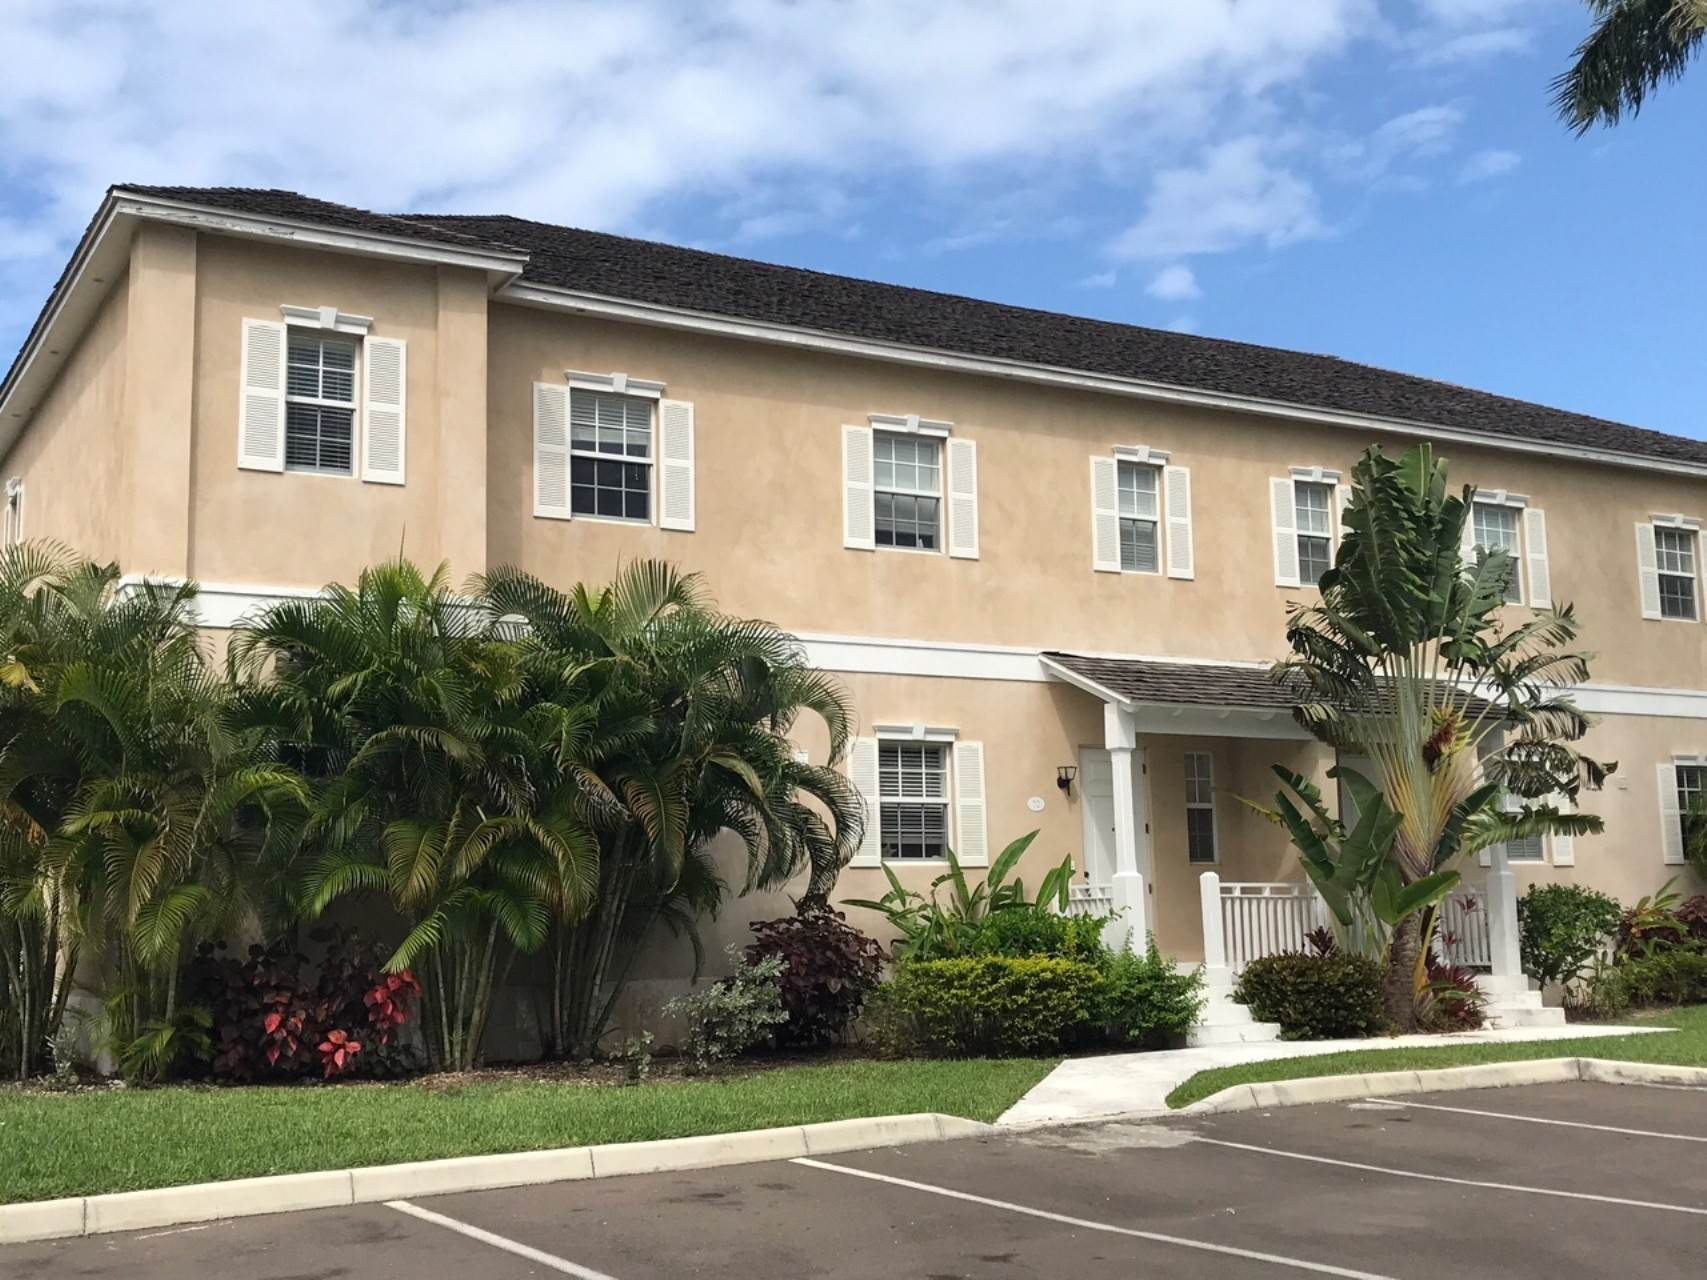 Co-op / Condo for Rent at Executive Balmoral Townhouse - MLS 41847 Cable Beach, Nassau And Paradise Island, Bahamas